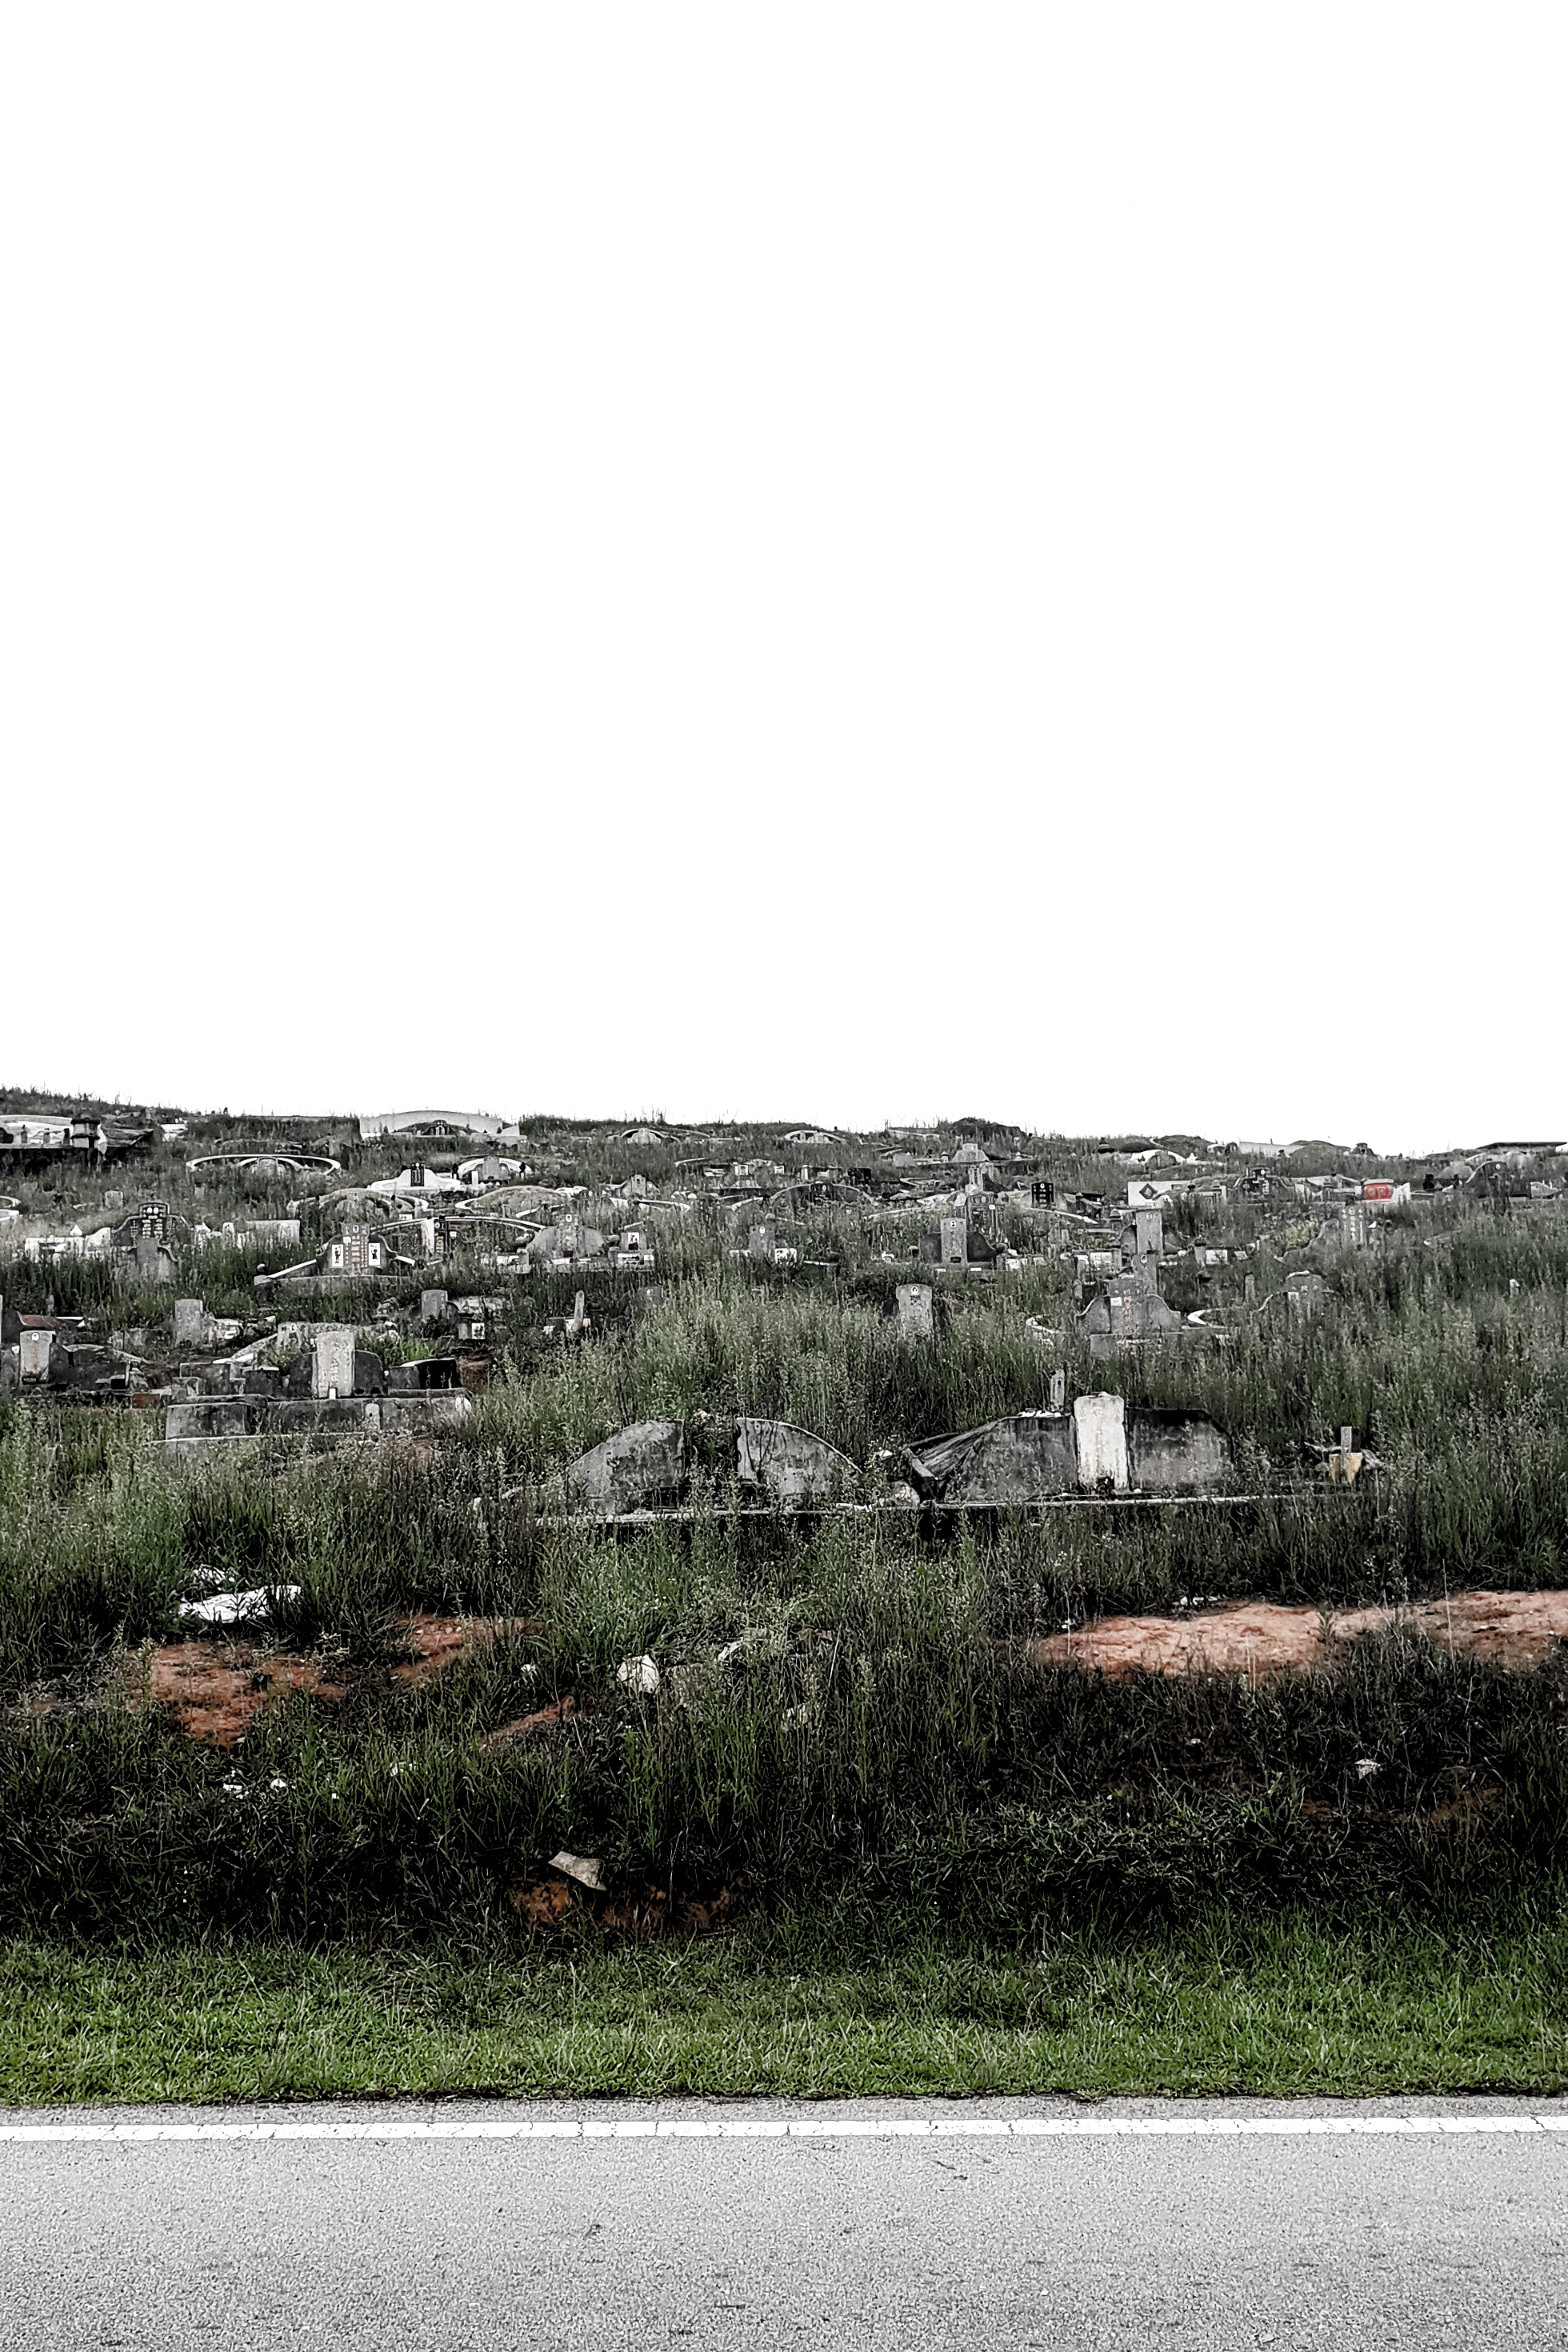 09:02 Some of the scenery you will get to enjoy. A traditional Chinese cemetery, which is oddly beautiful and grand in it's own way